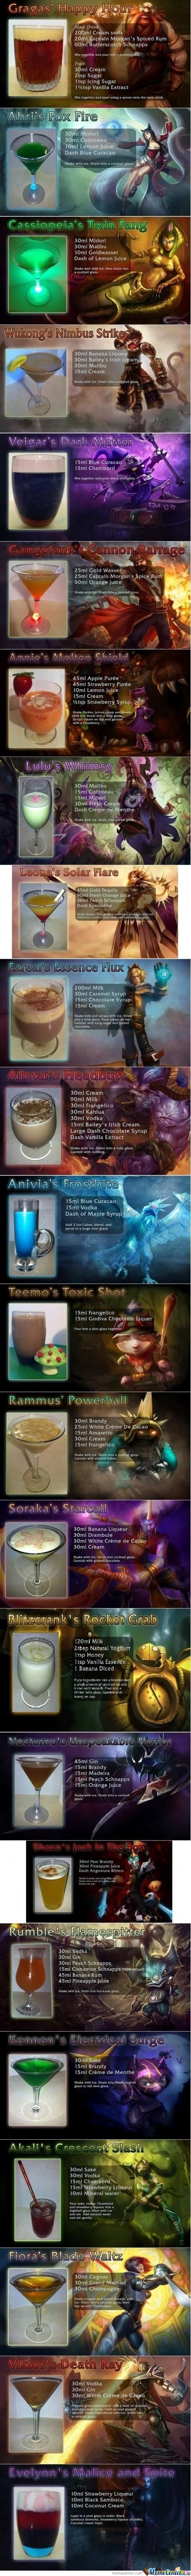 (Long Post)For Lol Players, Lol Bar Menu